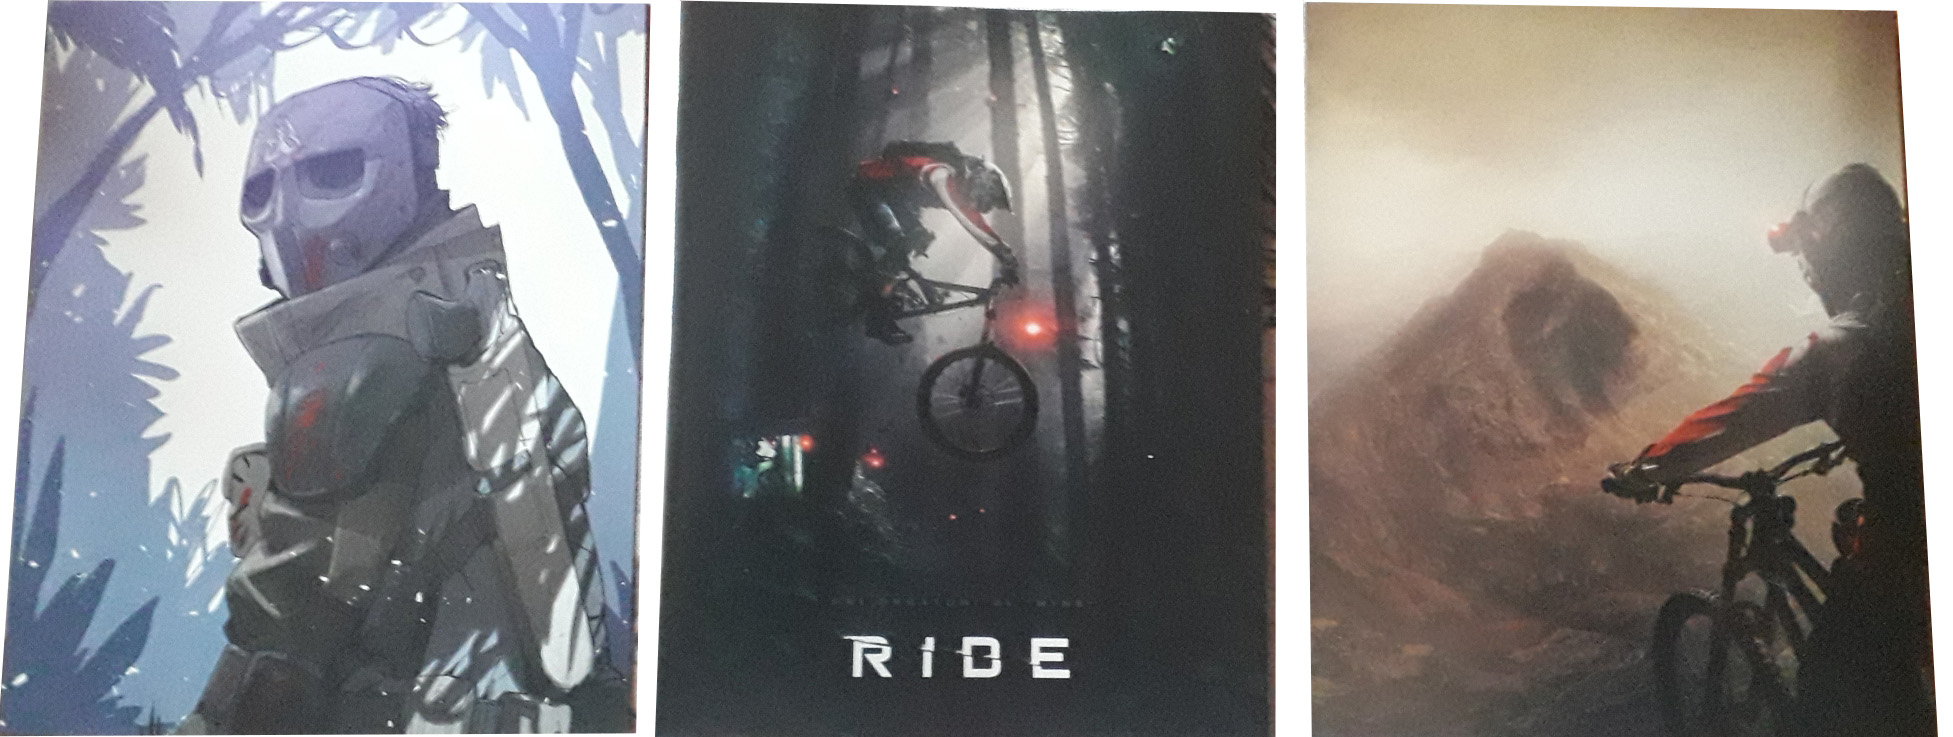 Le card e, al centro, la cover del booklet, del blu-ray di Ride